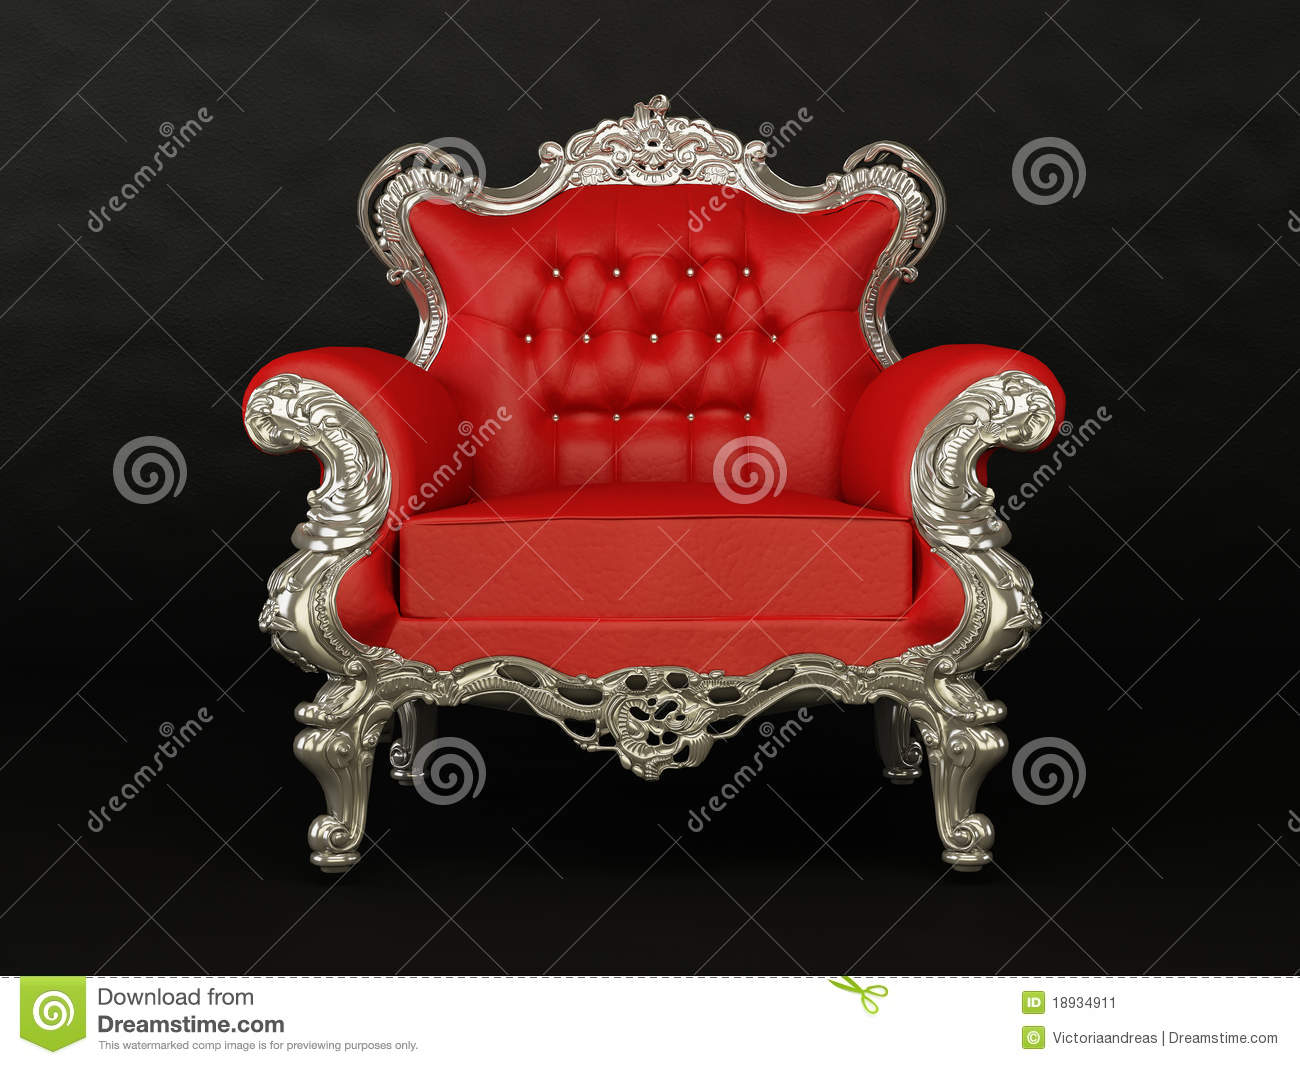 fauteuil rouge luxueux sur le fond noir image stock image 18934911. Black Bedroom Furniture Sets. Home Design Ideas